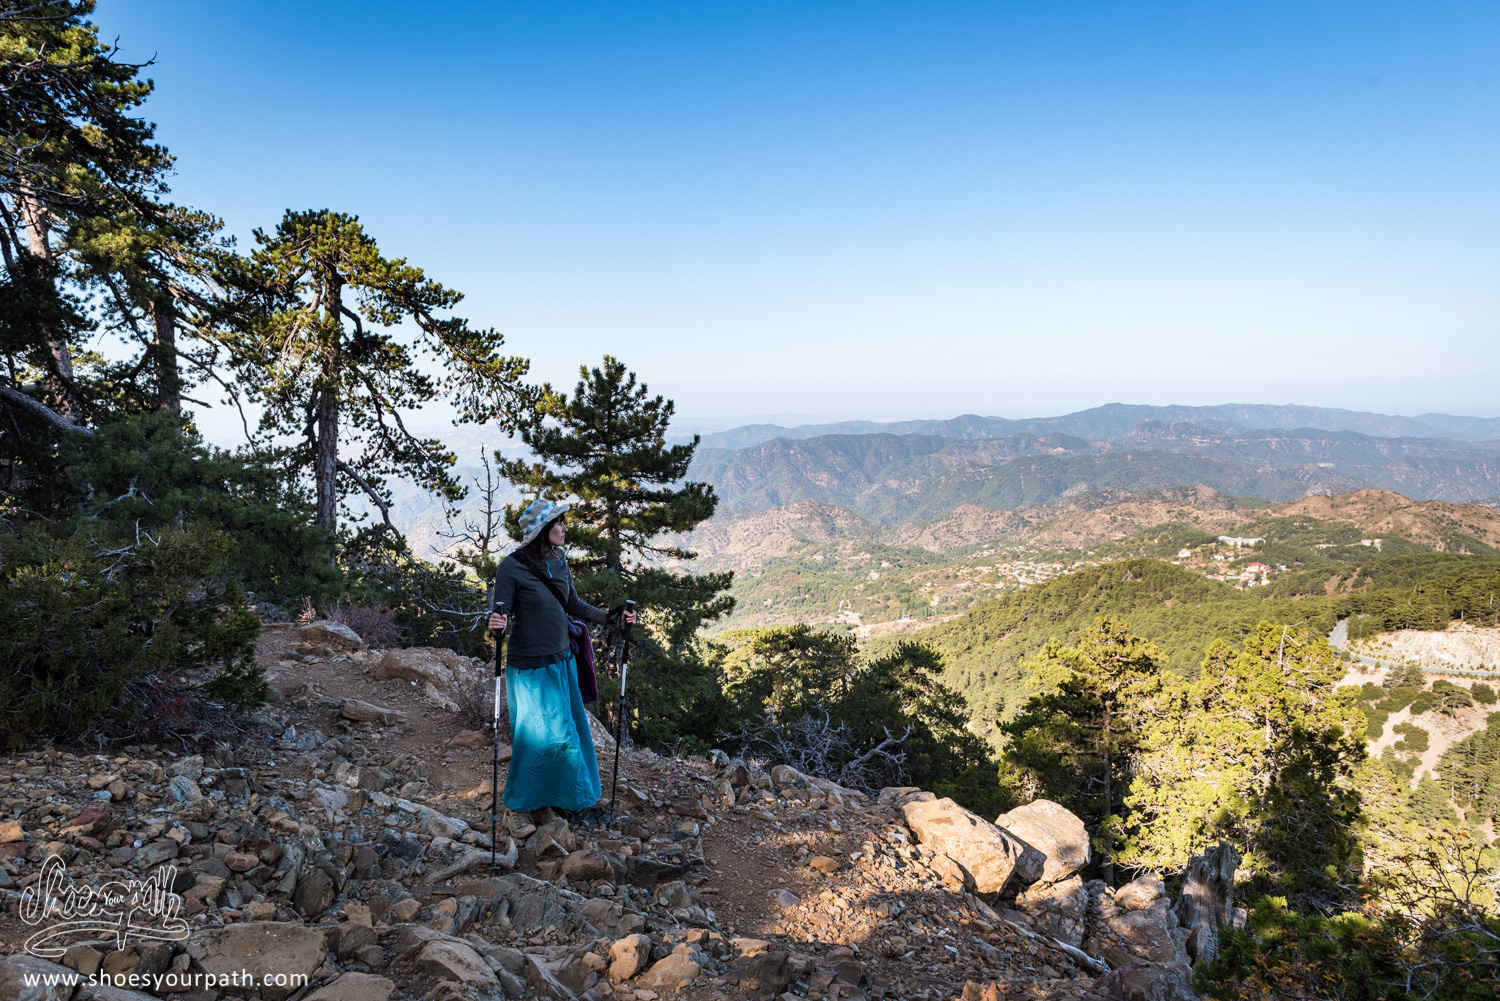 On the heights of Mount Olympos in the Troodos mountains, on the Atalanti Nature Trail - Cyprus